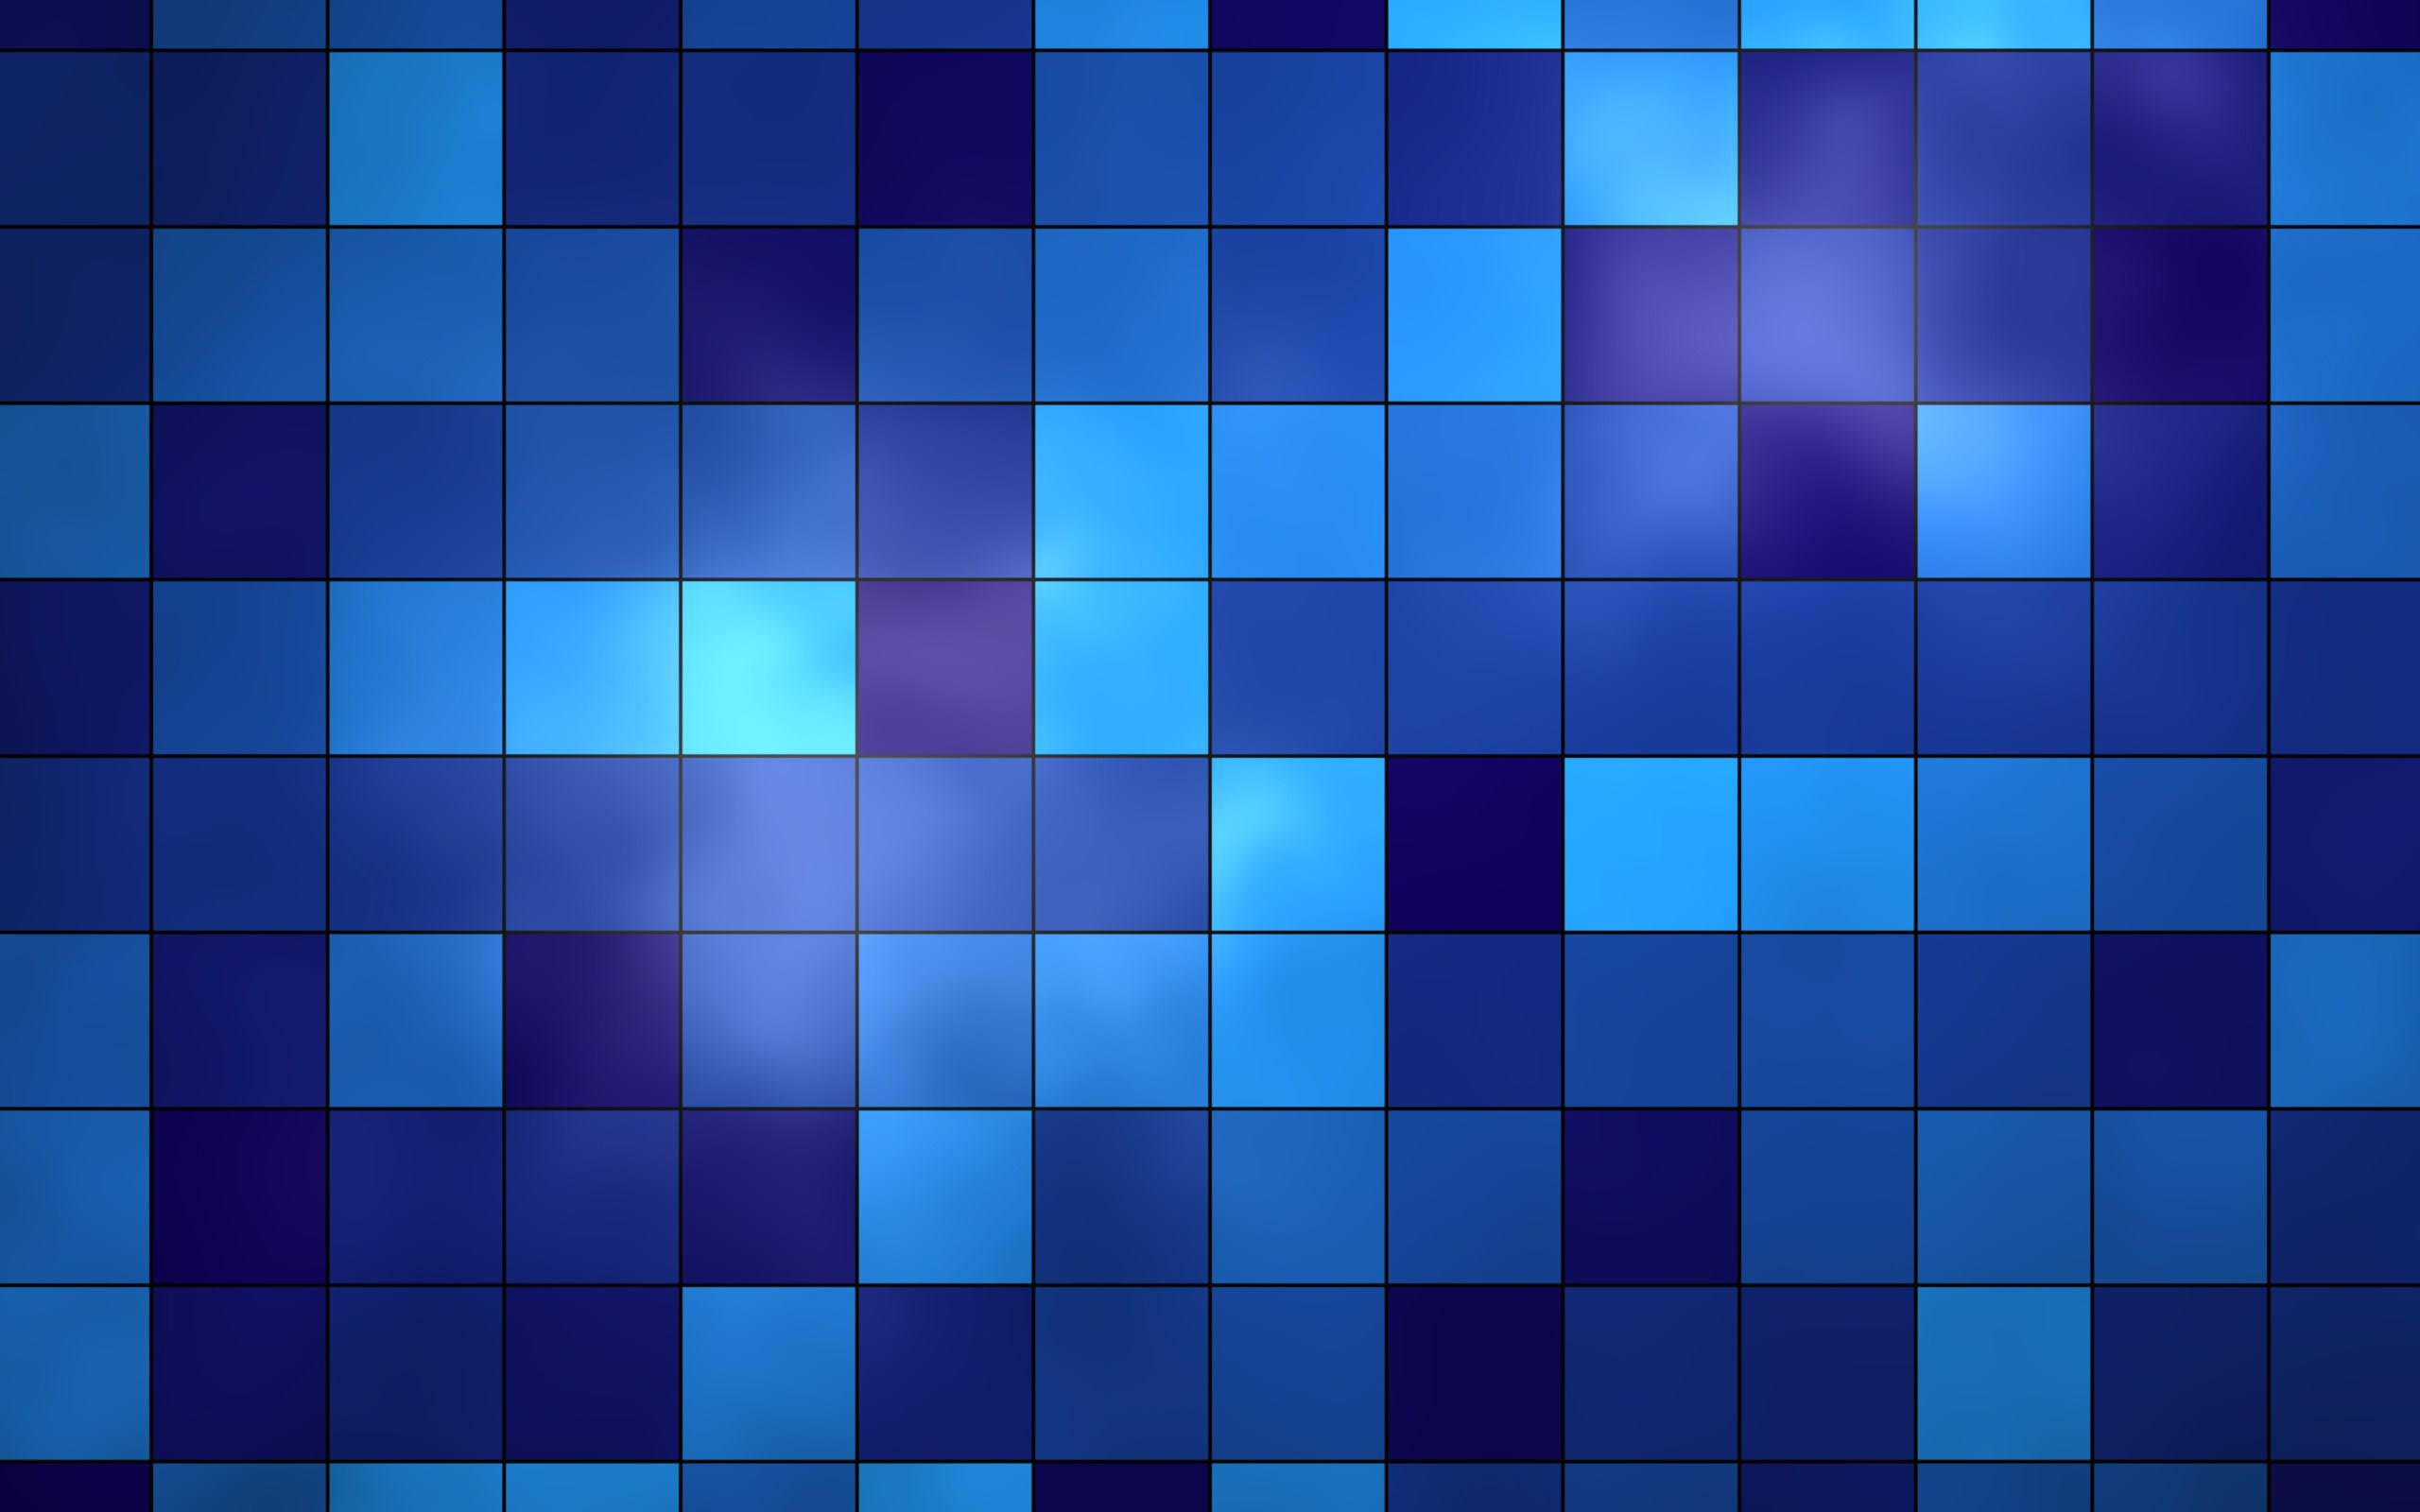 7 mosaic hd wallpapers backgrounds wallpaper abyss for Mosaic wallpaper for walls